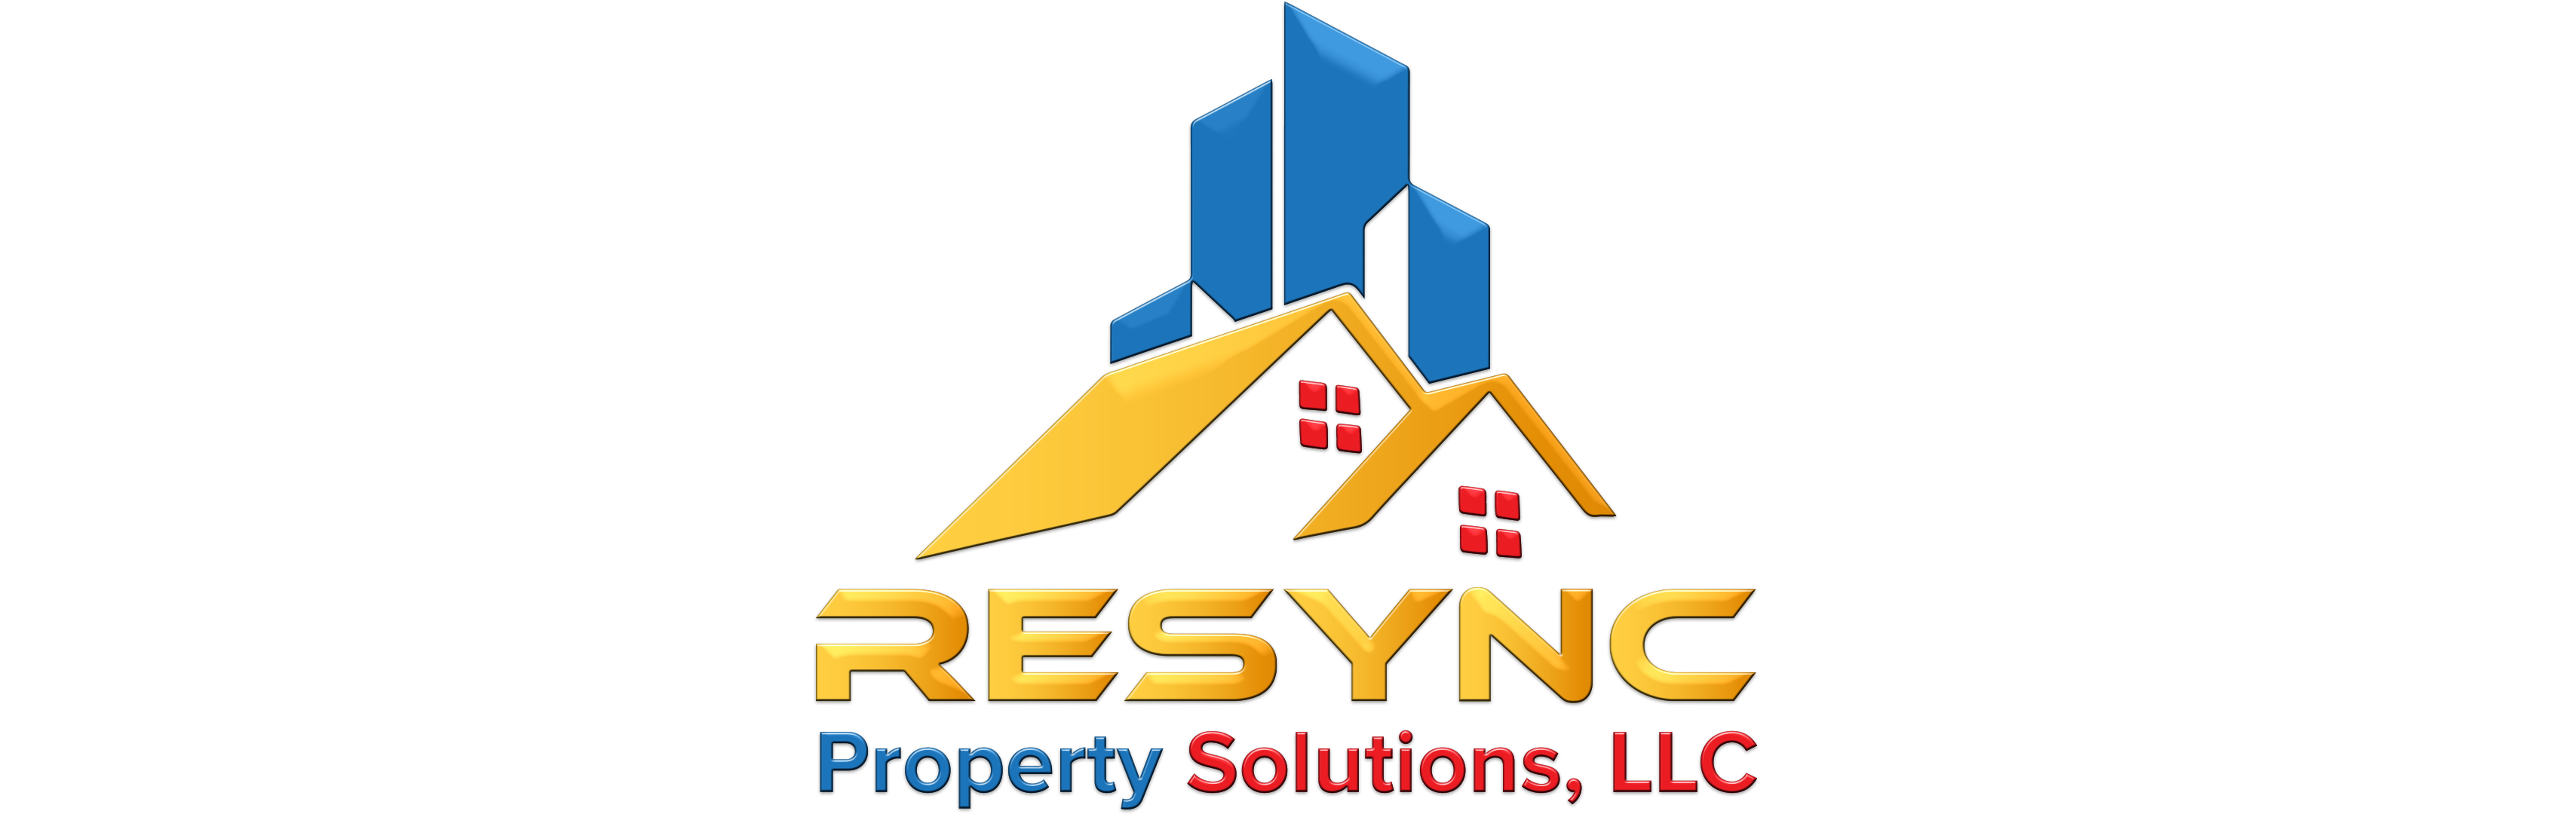 Resync Property Solutions, LLC